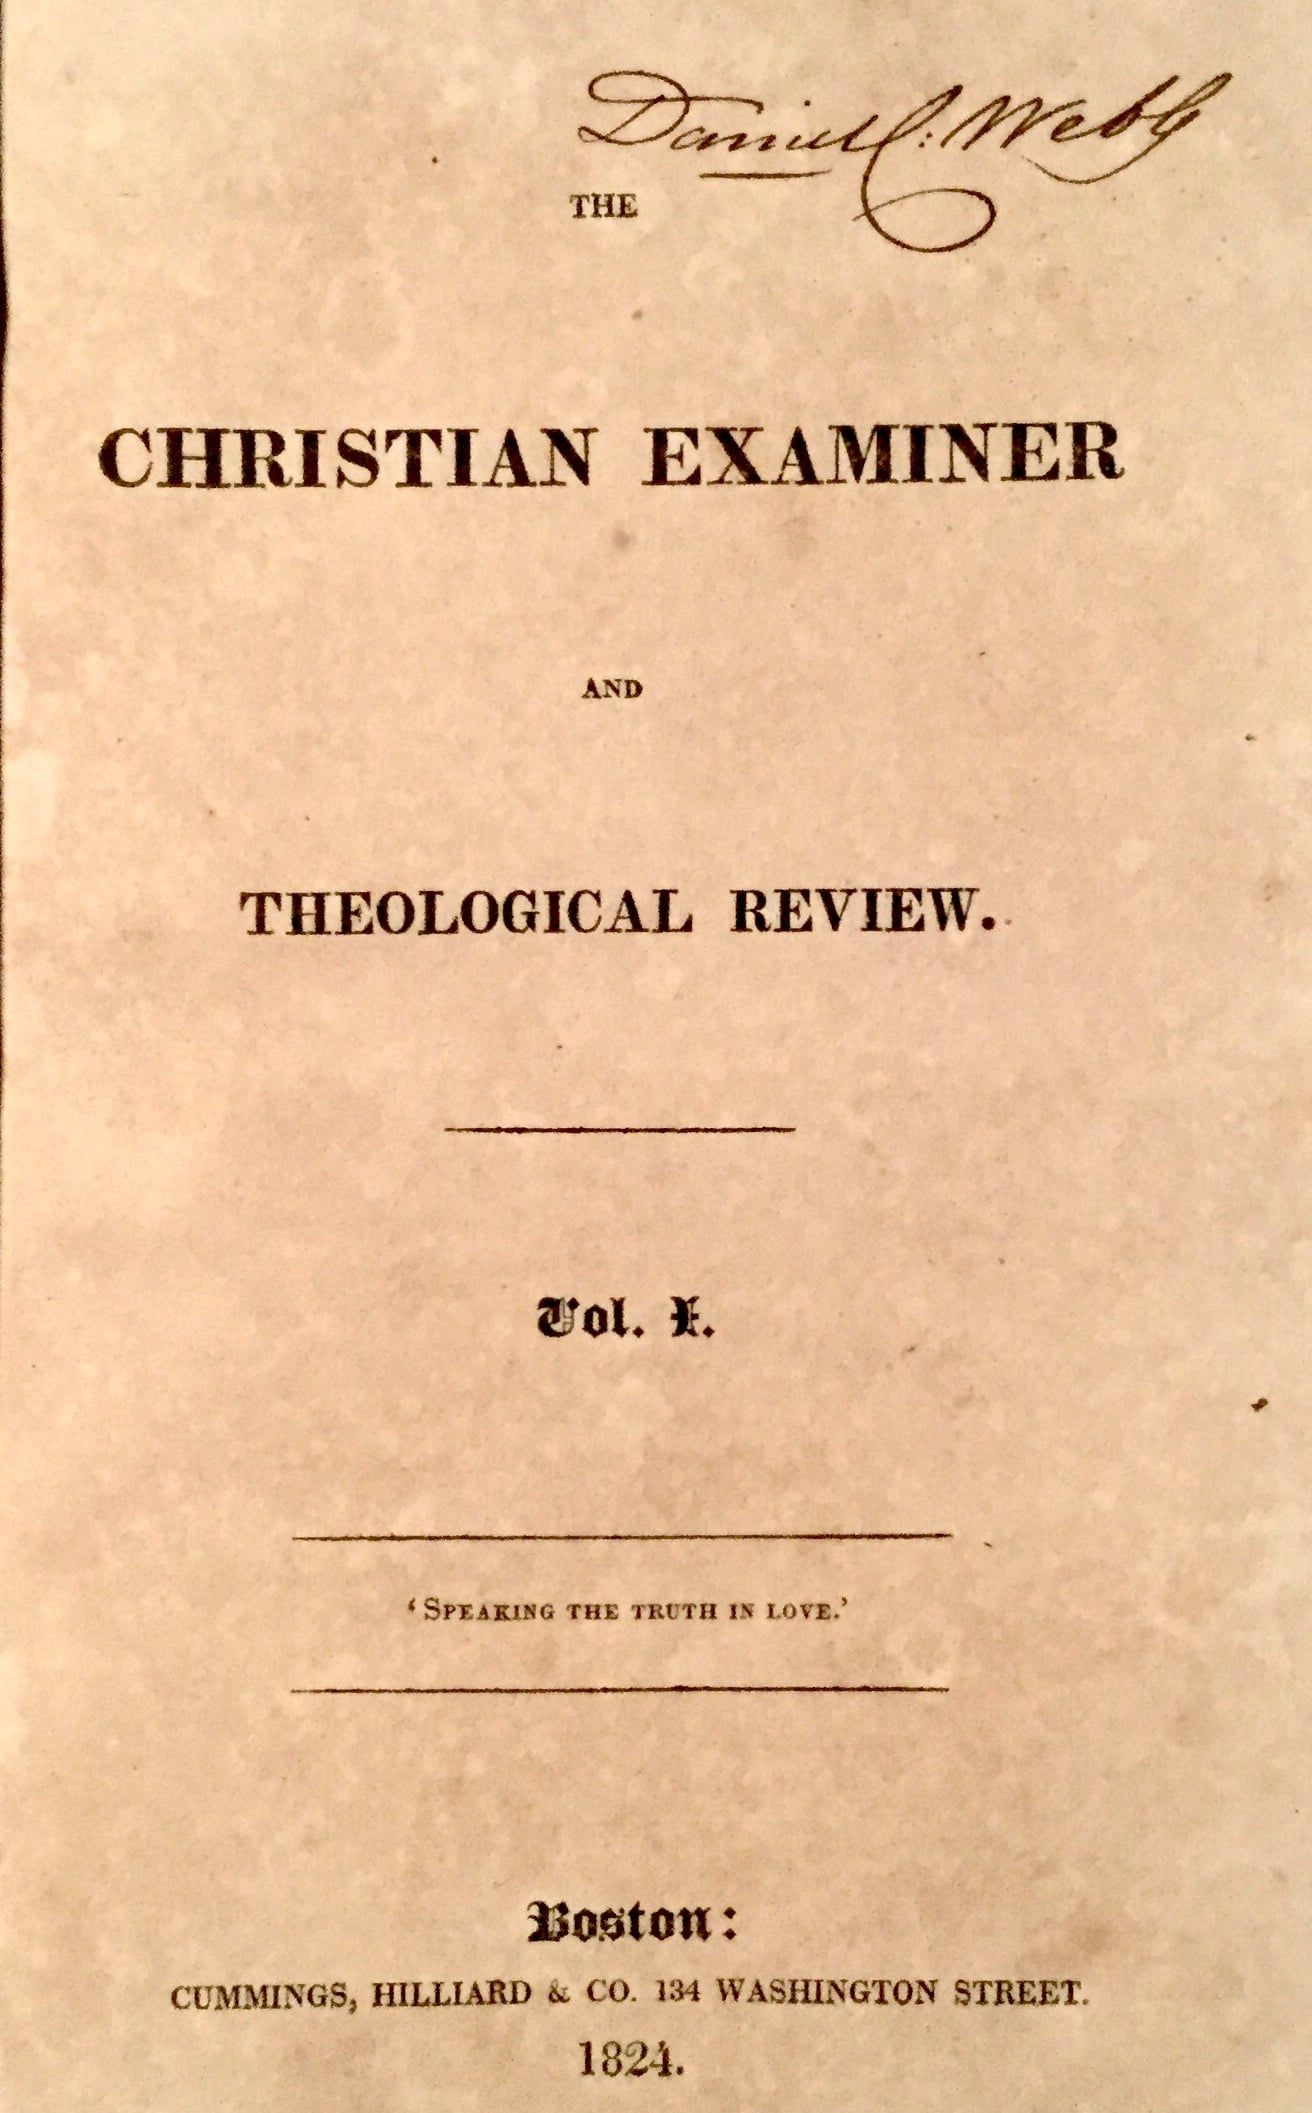 Christian Examiner and Theological Review